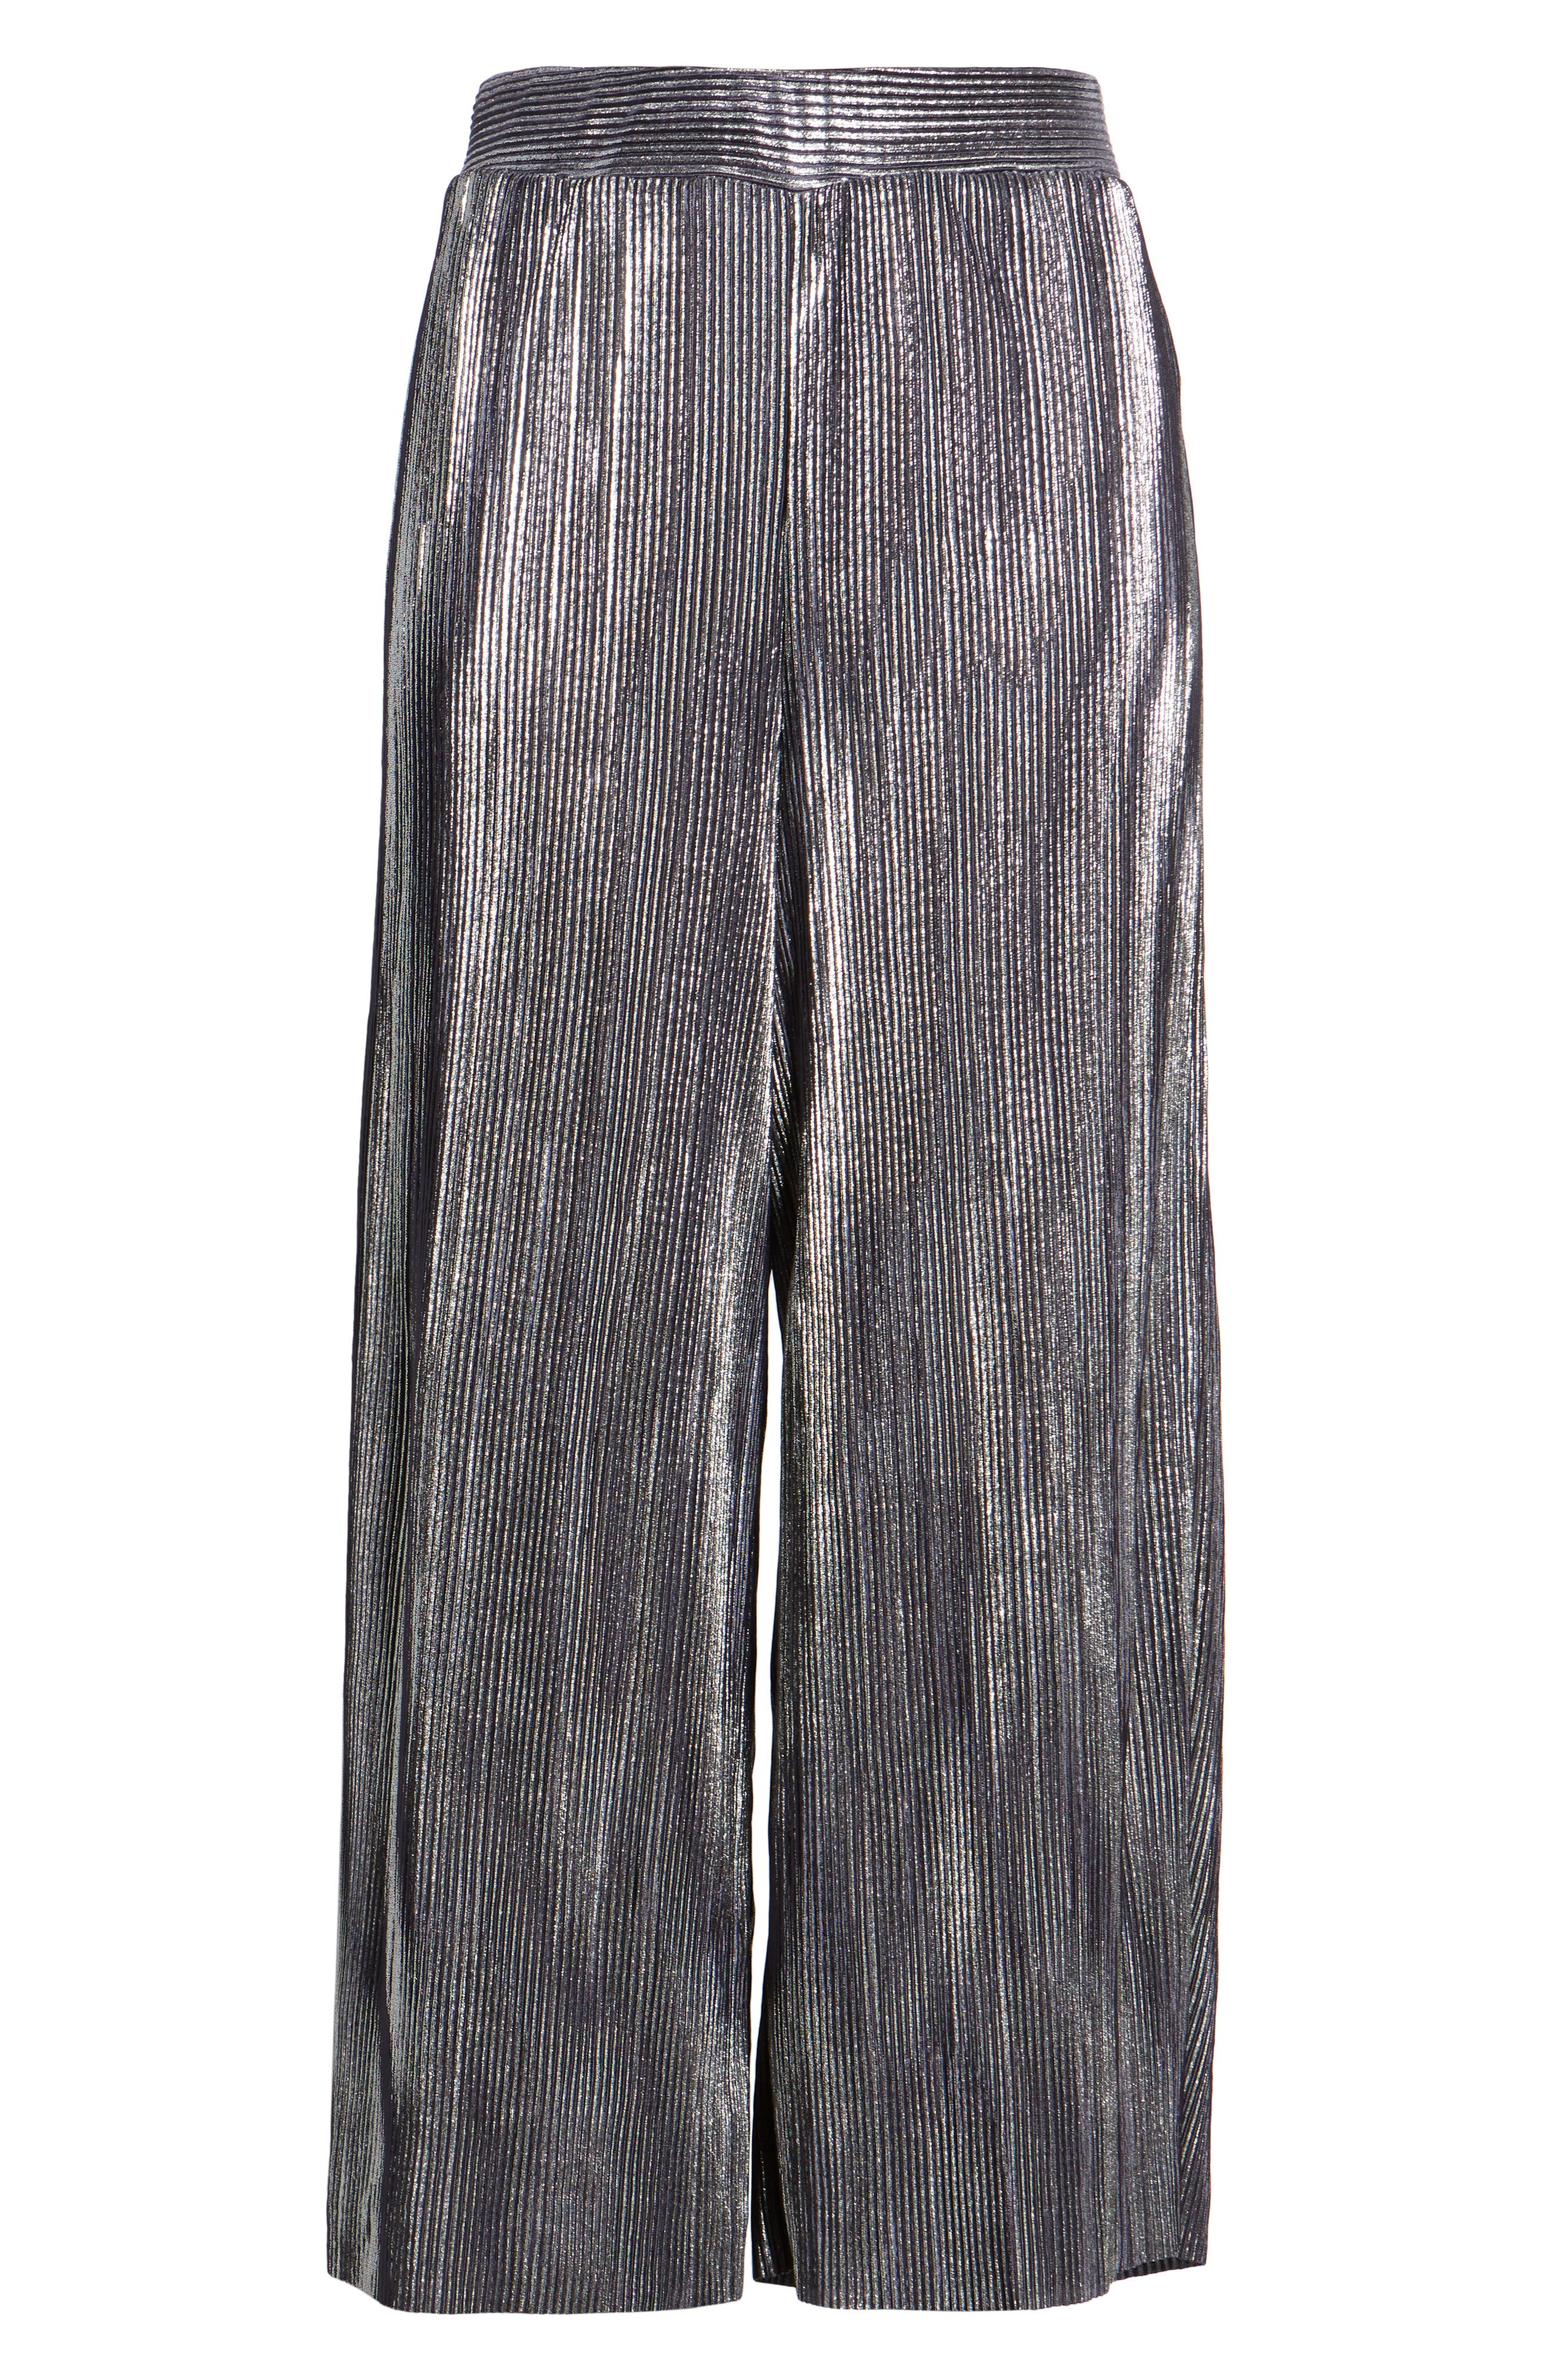 Metallic Pleated Crop Pants,                             Alternate thumbnail 6, color,                             046